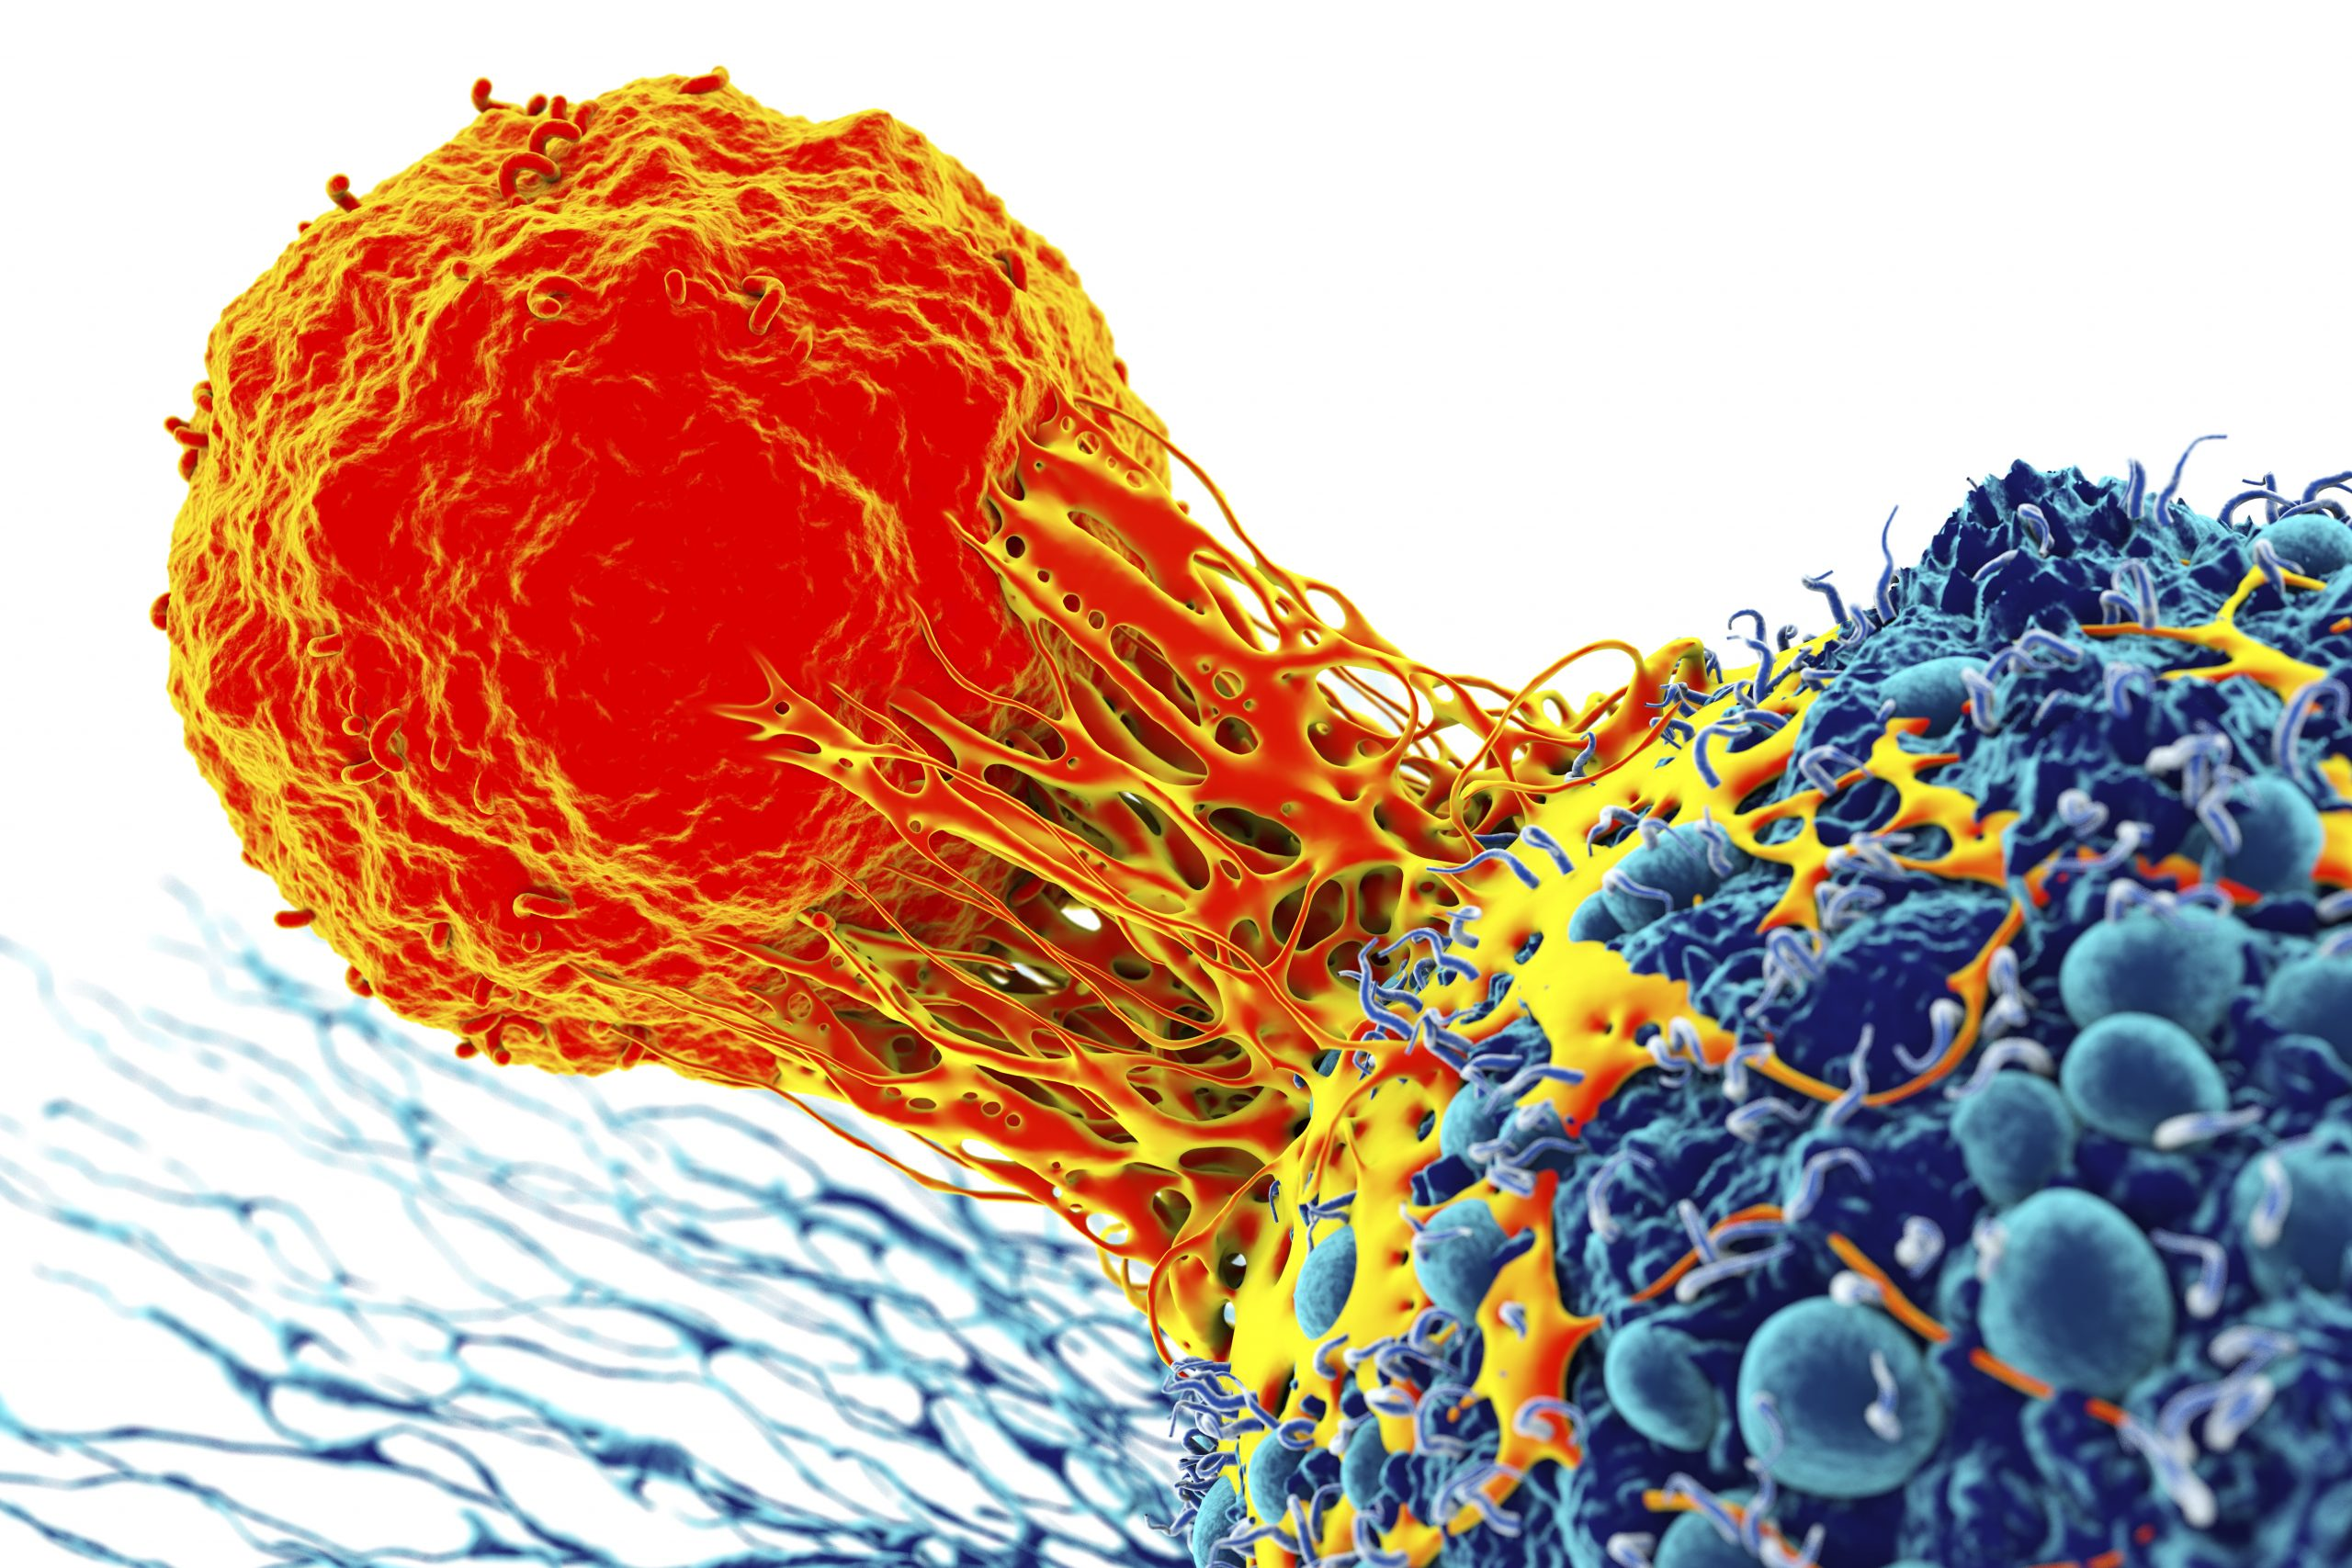 Researchers ID Potential Protein behind DNA Repair in Cancer Cells